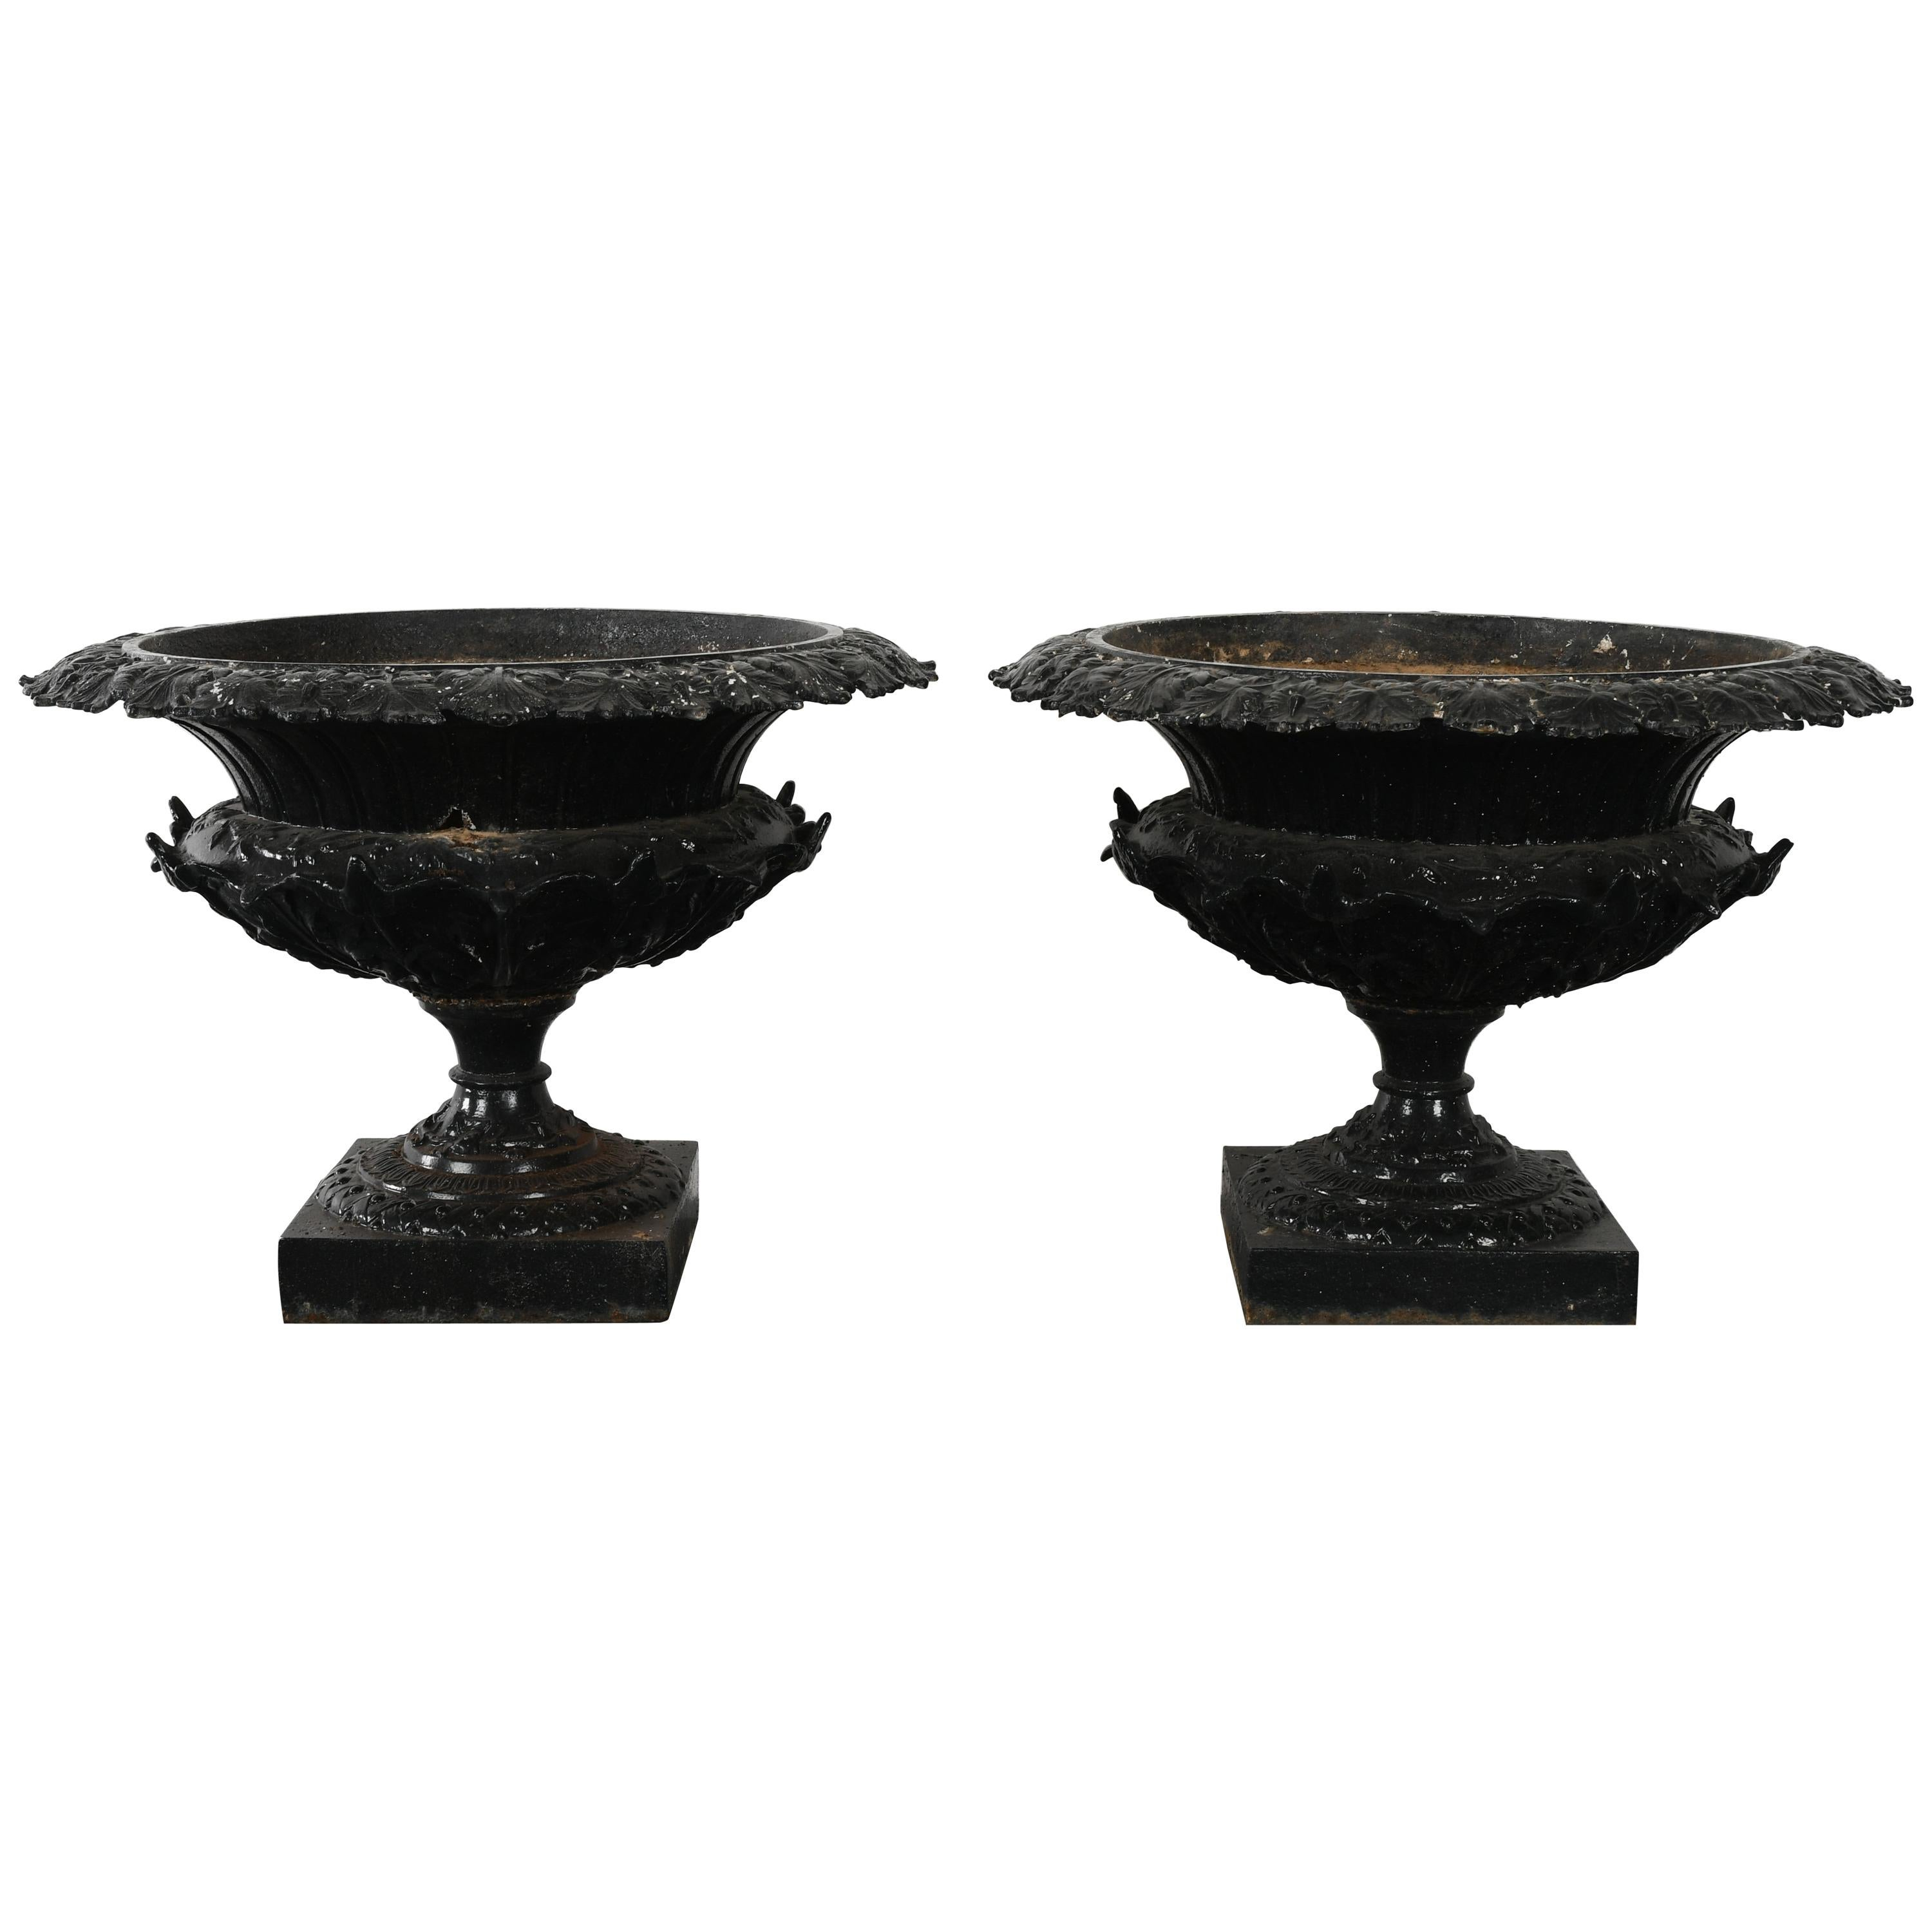 Pair Of Large Scale 19th Century Cast Iron Garden Urns